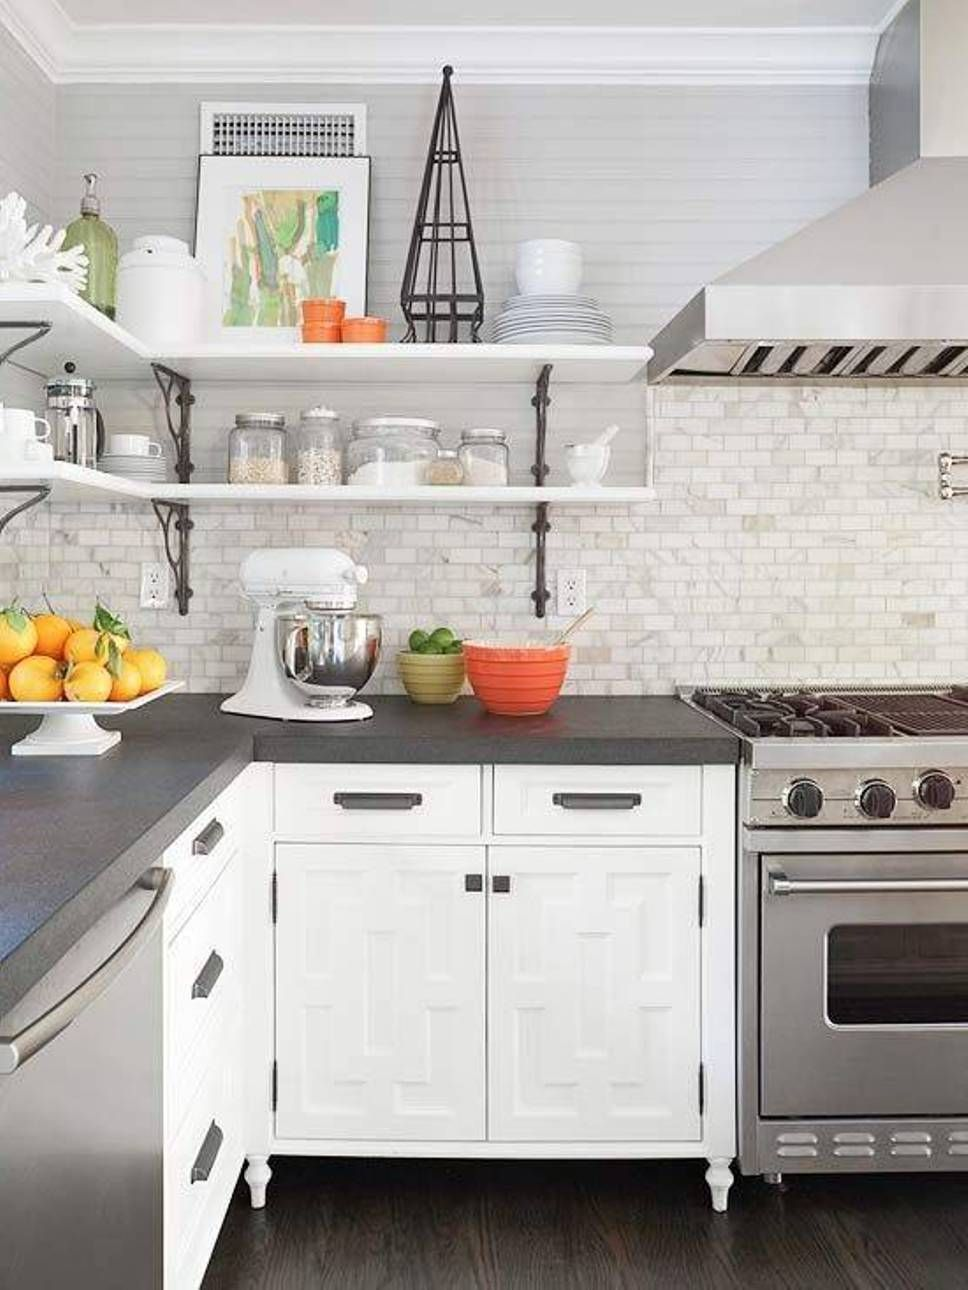 Pin By Susanne Mueller On Kitchen Grey Countertops Gray And White Kitchen Small Kitchen Cabinets